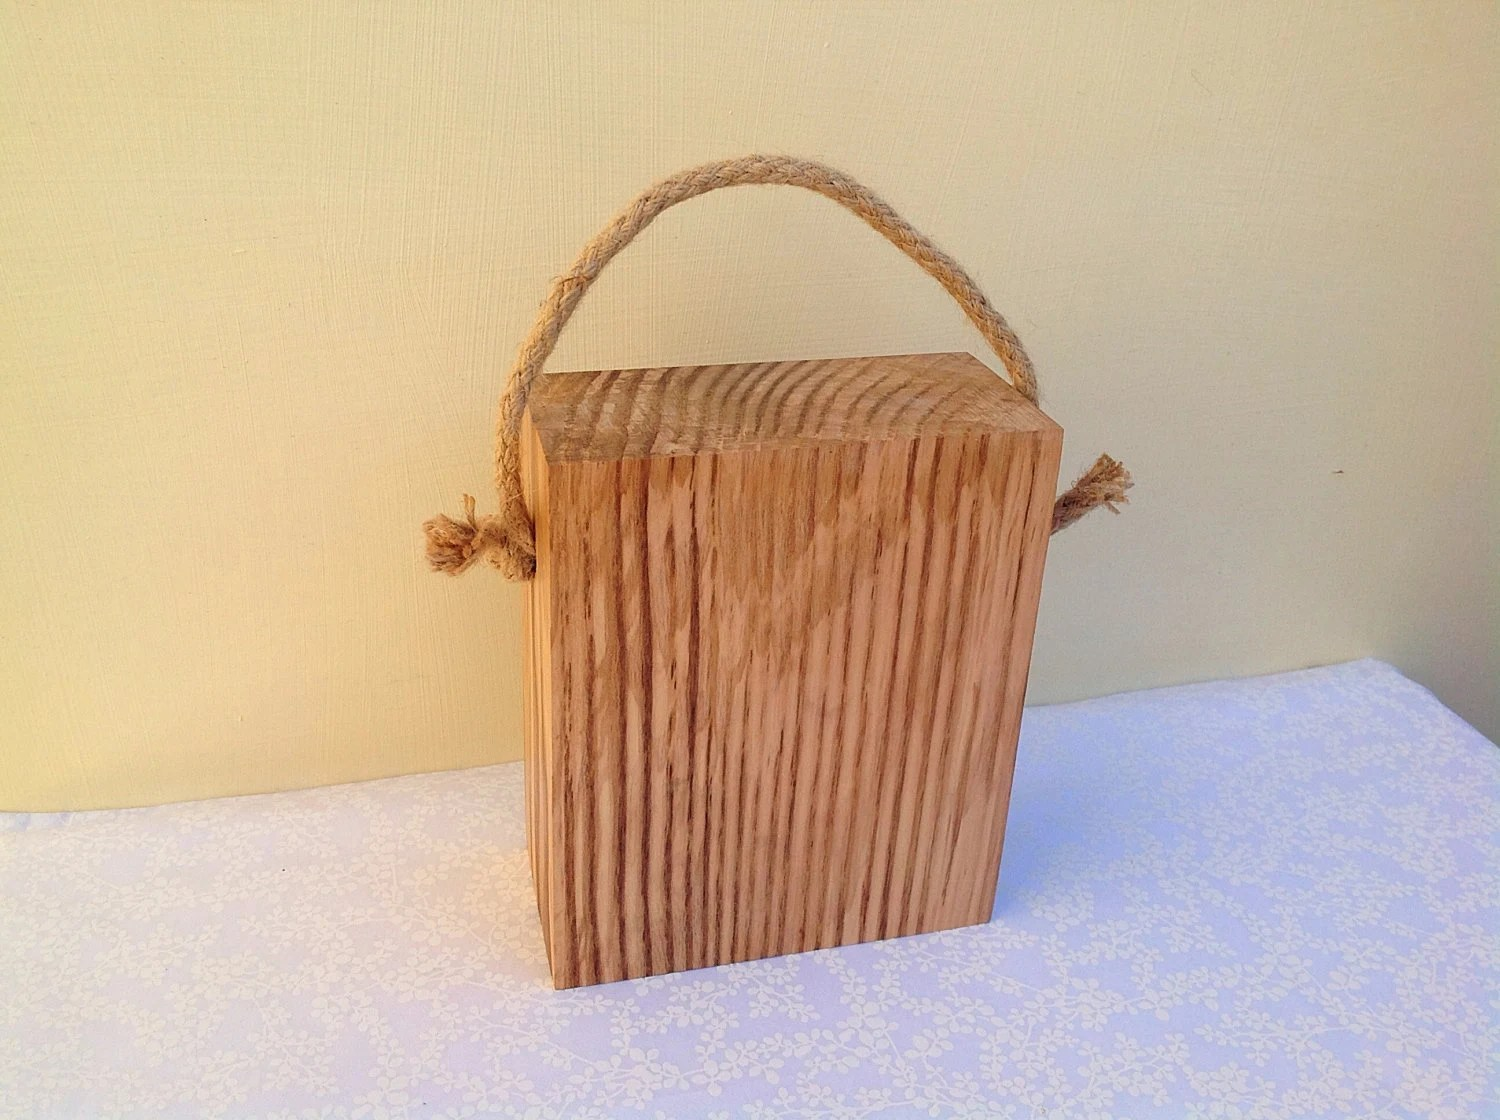 Rustic Door Stopper Solid Wood Doorstop Rustic Wood Doorstop Natural Ash Wood